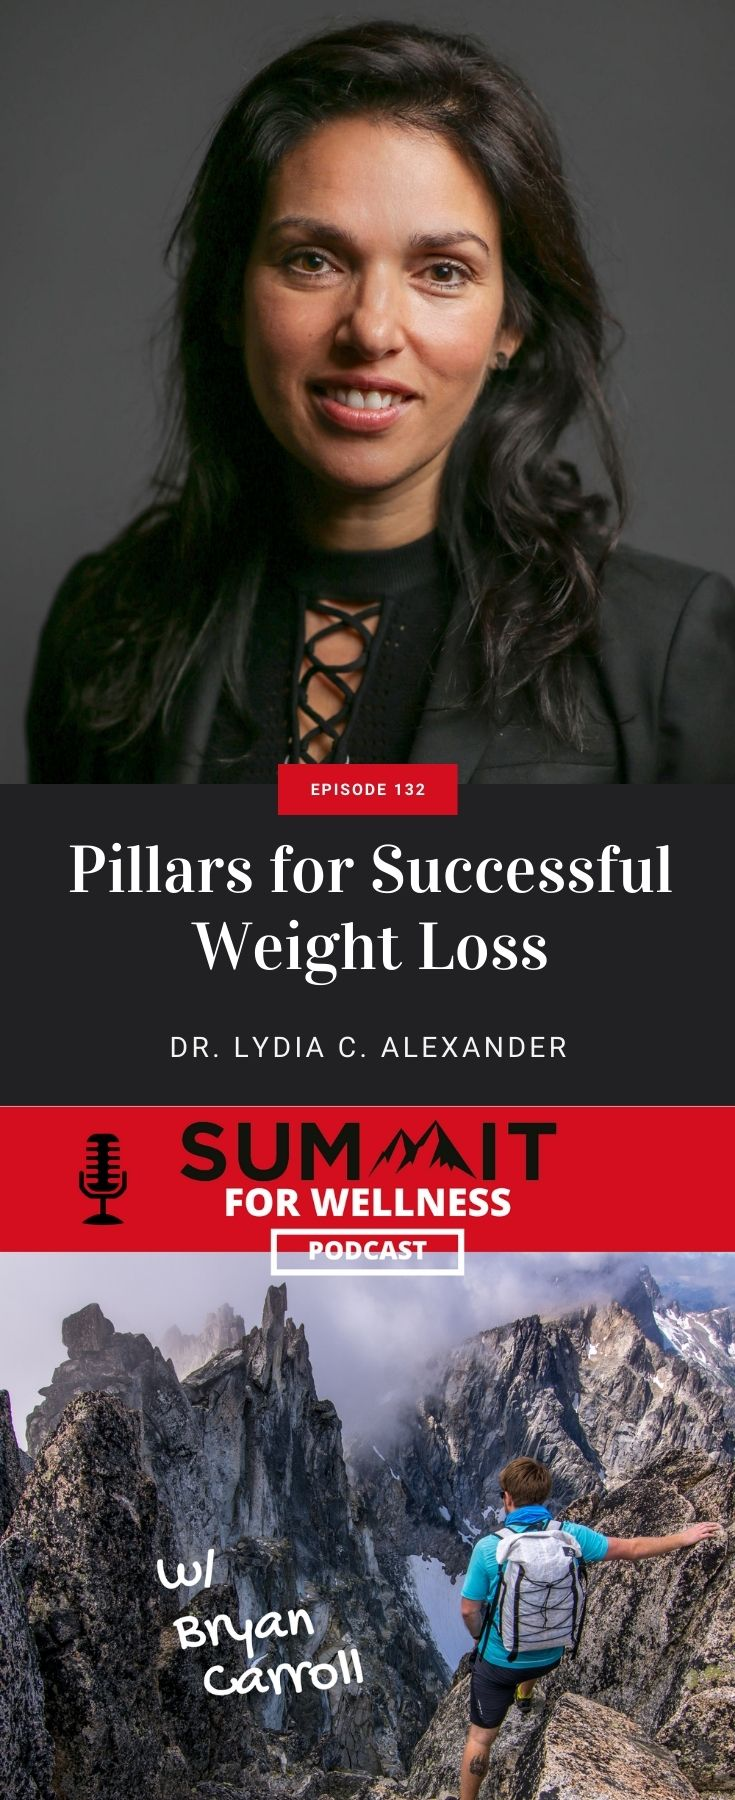 Learn from Dr. Lydia C. Alexander the pillars to lose weight